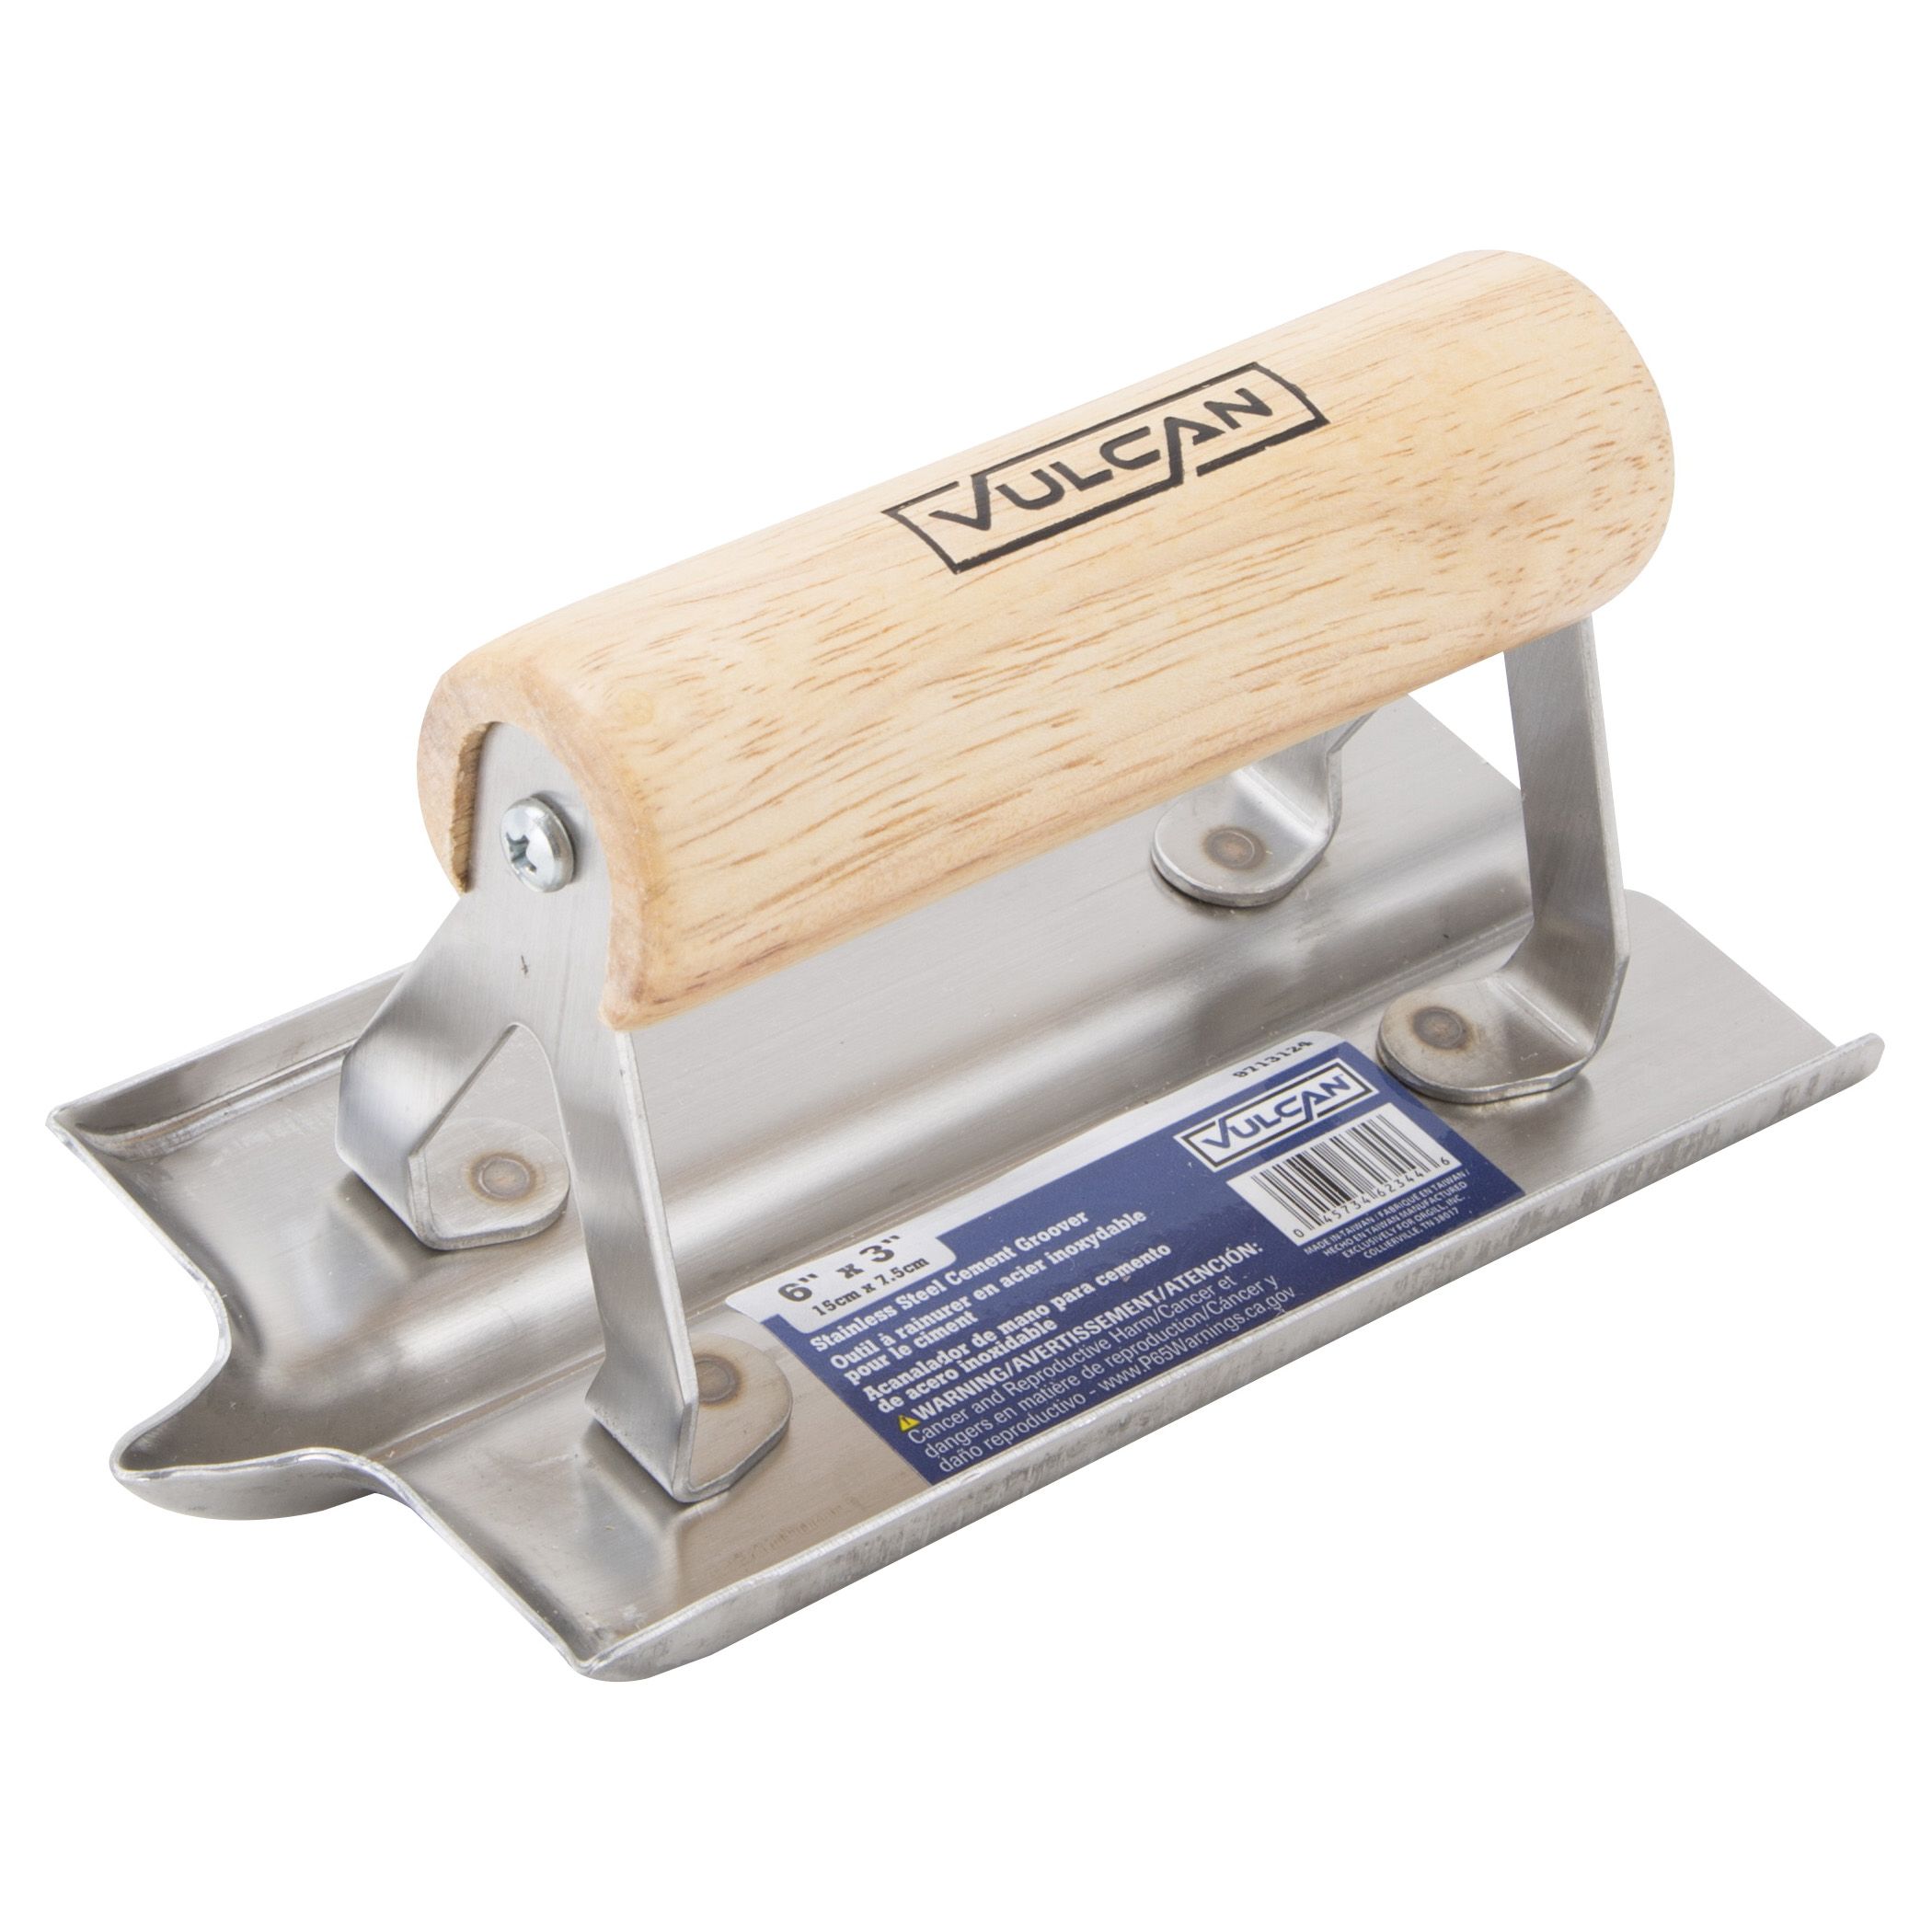 Picture of Vulcan 16901-3L Concrete Hand Groover, 6 in L Blade, 3 in W Blade, Stainless Steel Blade